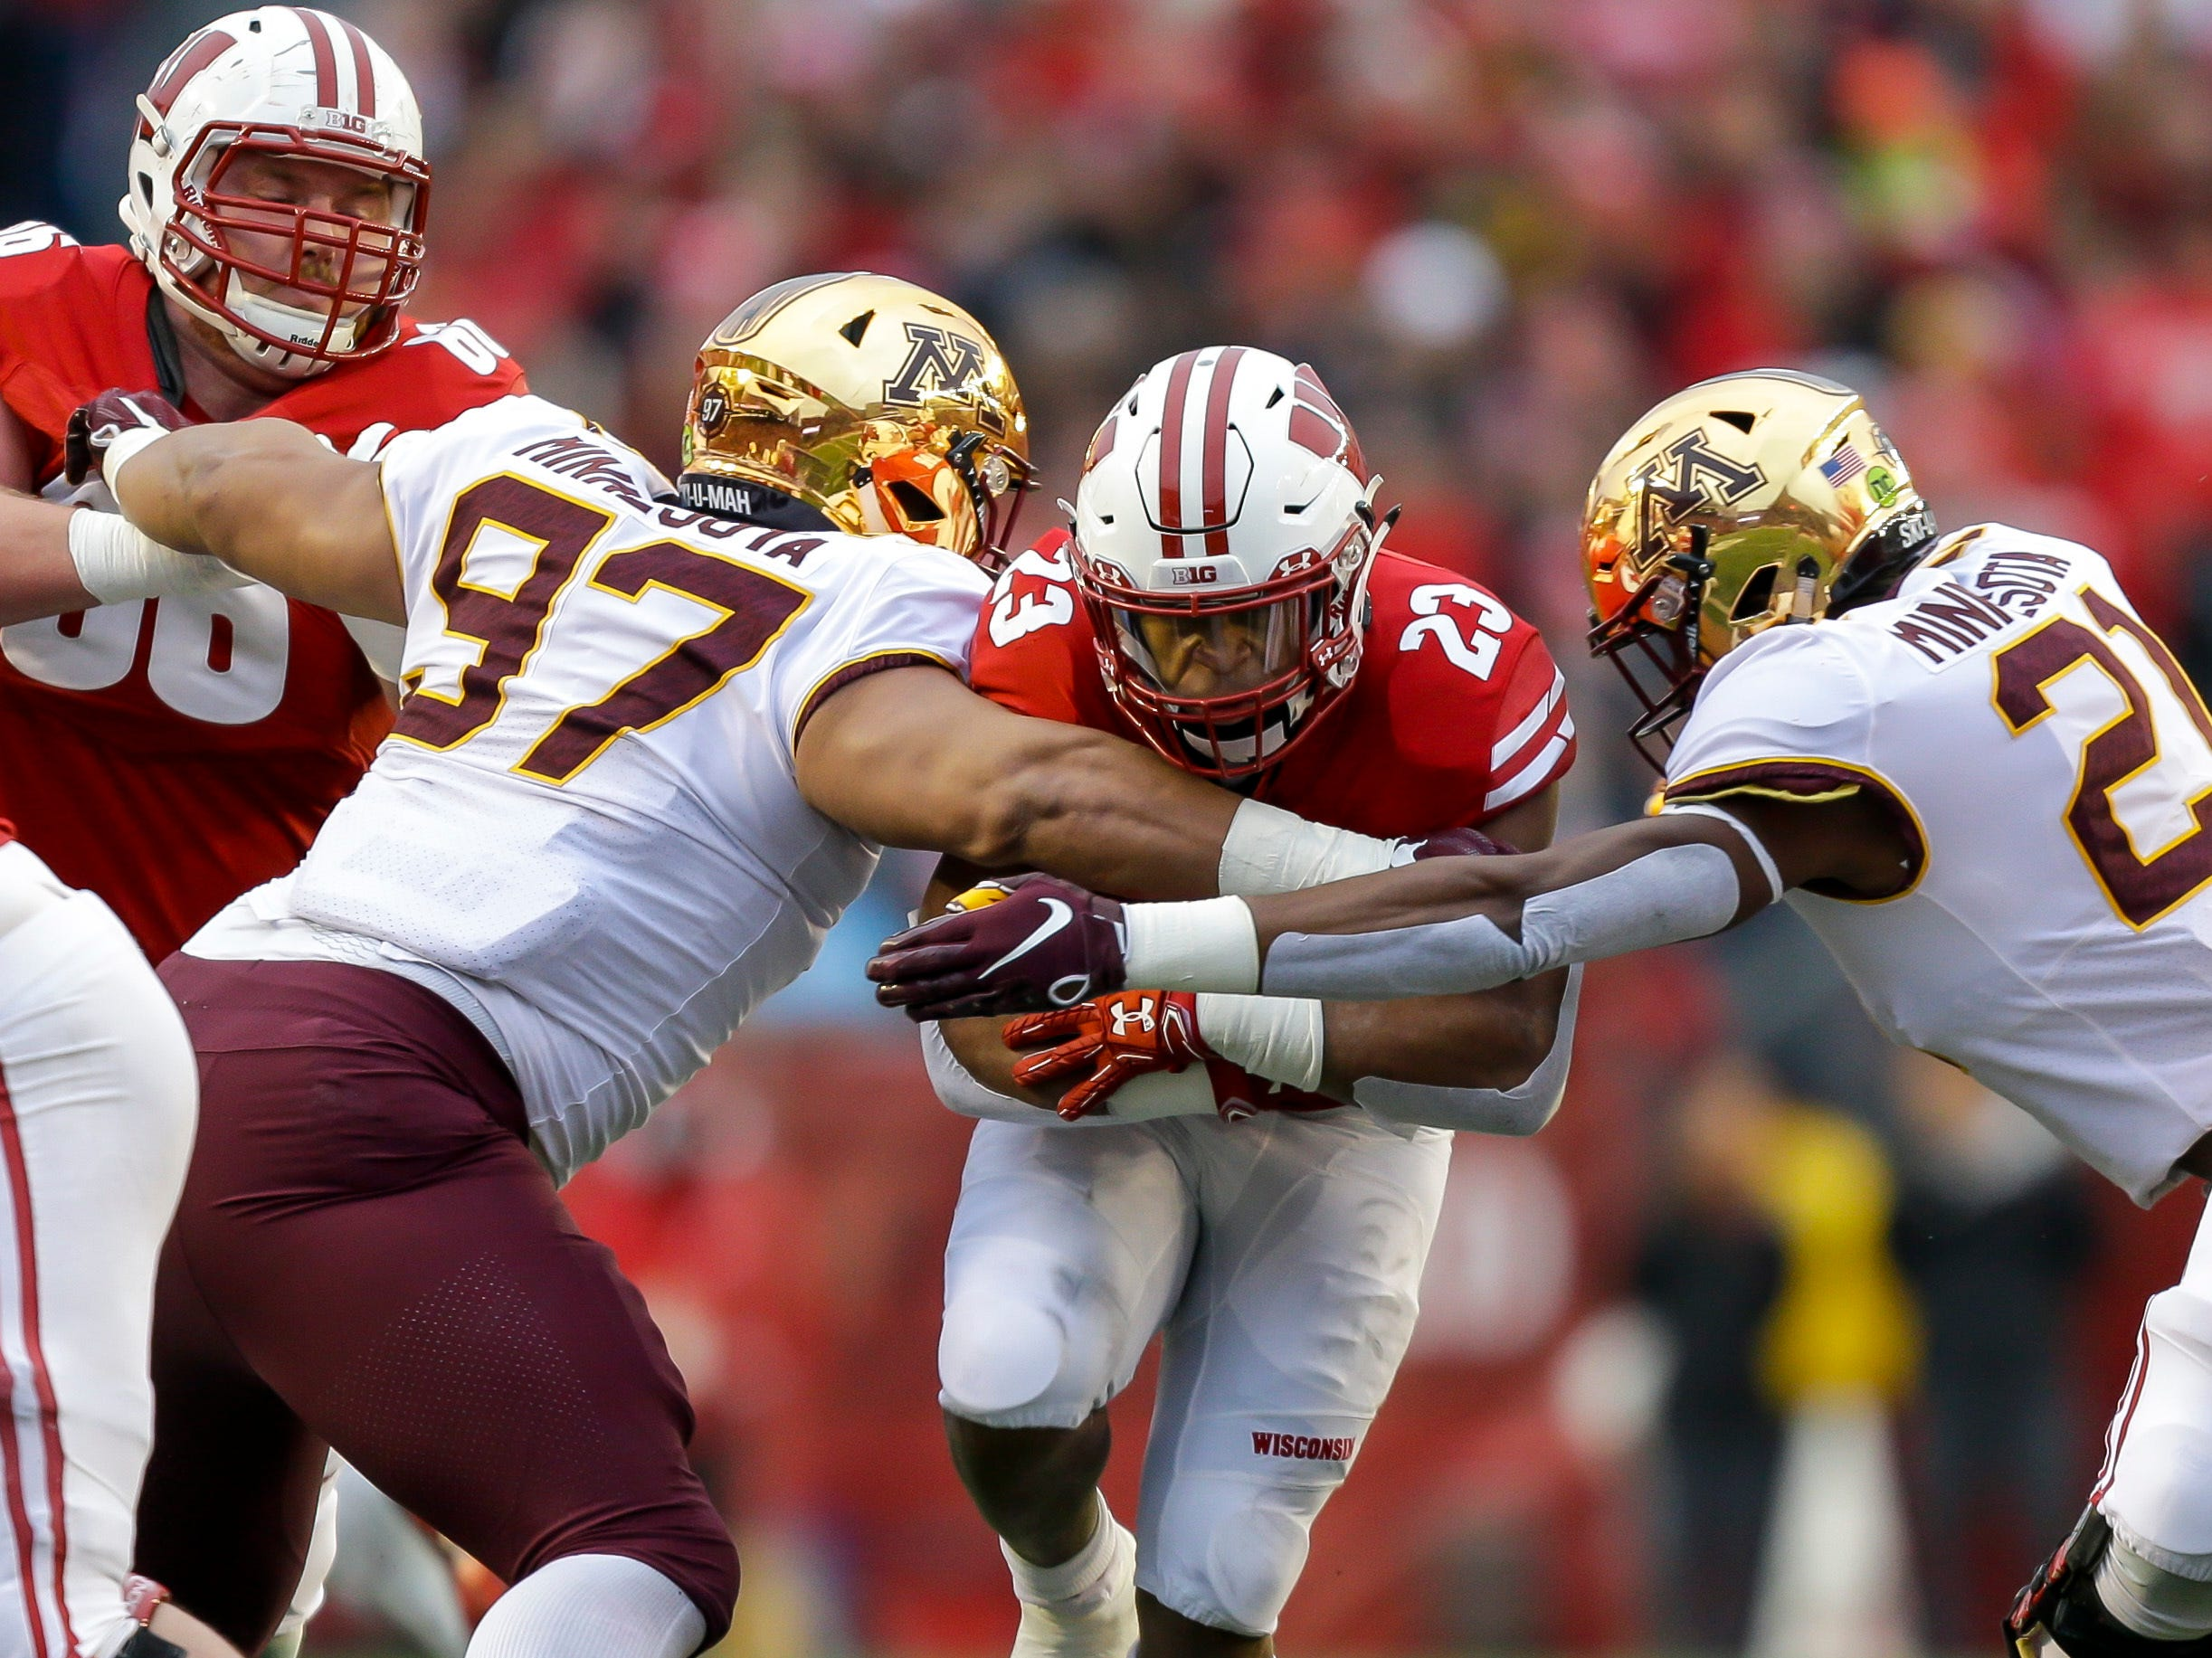 7. Wisconsin (7-5, 5-4) – The Badgers have been plagued by inconsistency all season but few expected them to close things out by getting trounced at home by Minnesota. It was never a game as the Badgers lost four of their final seven games and now wait to see where they'll play a bowl game after entering the season as the favorite to win the West. Last week: 5.